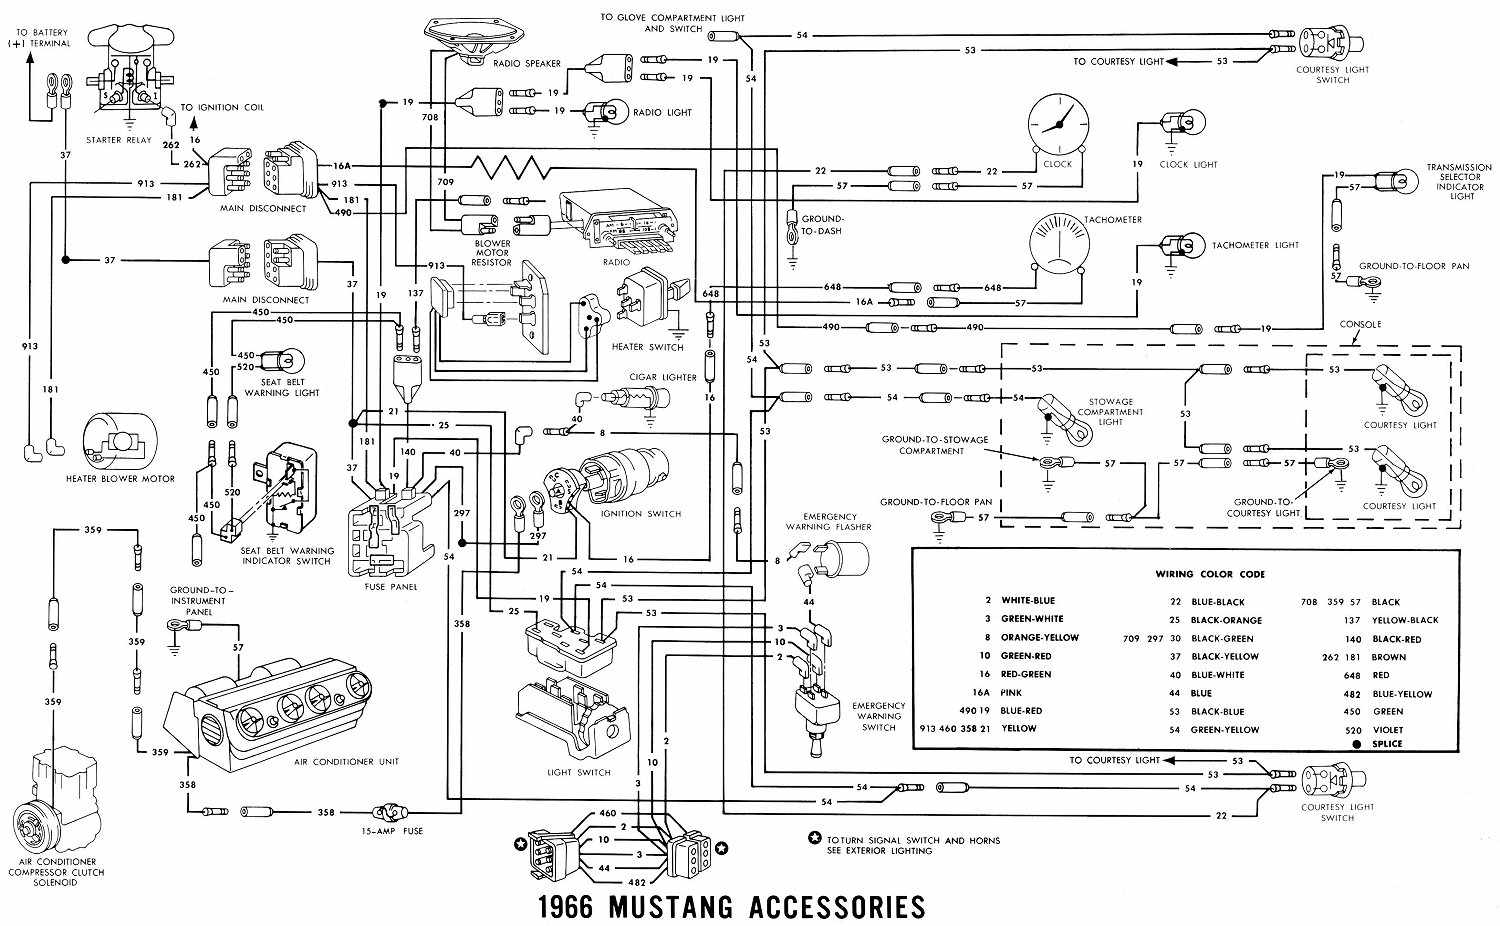 electrical wiring diagrams explained omron 24vdc relay diagram april 2011 all about